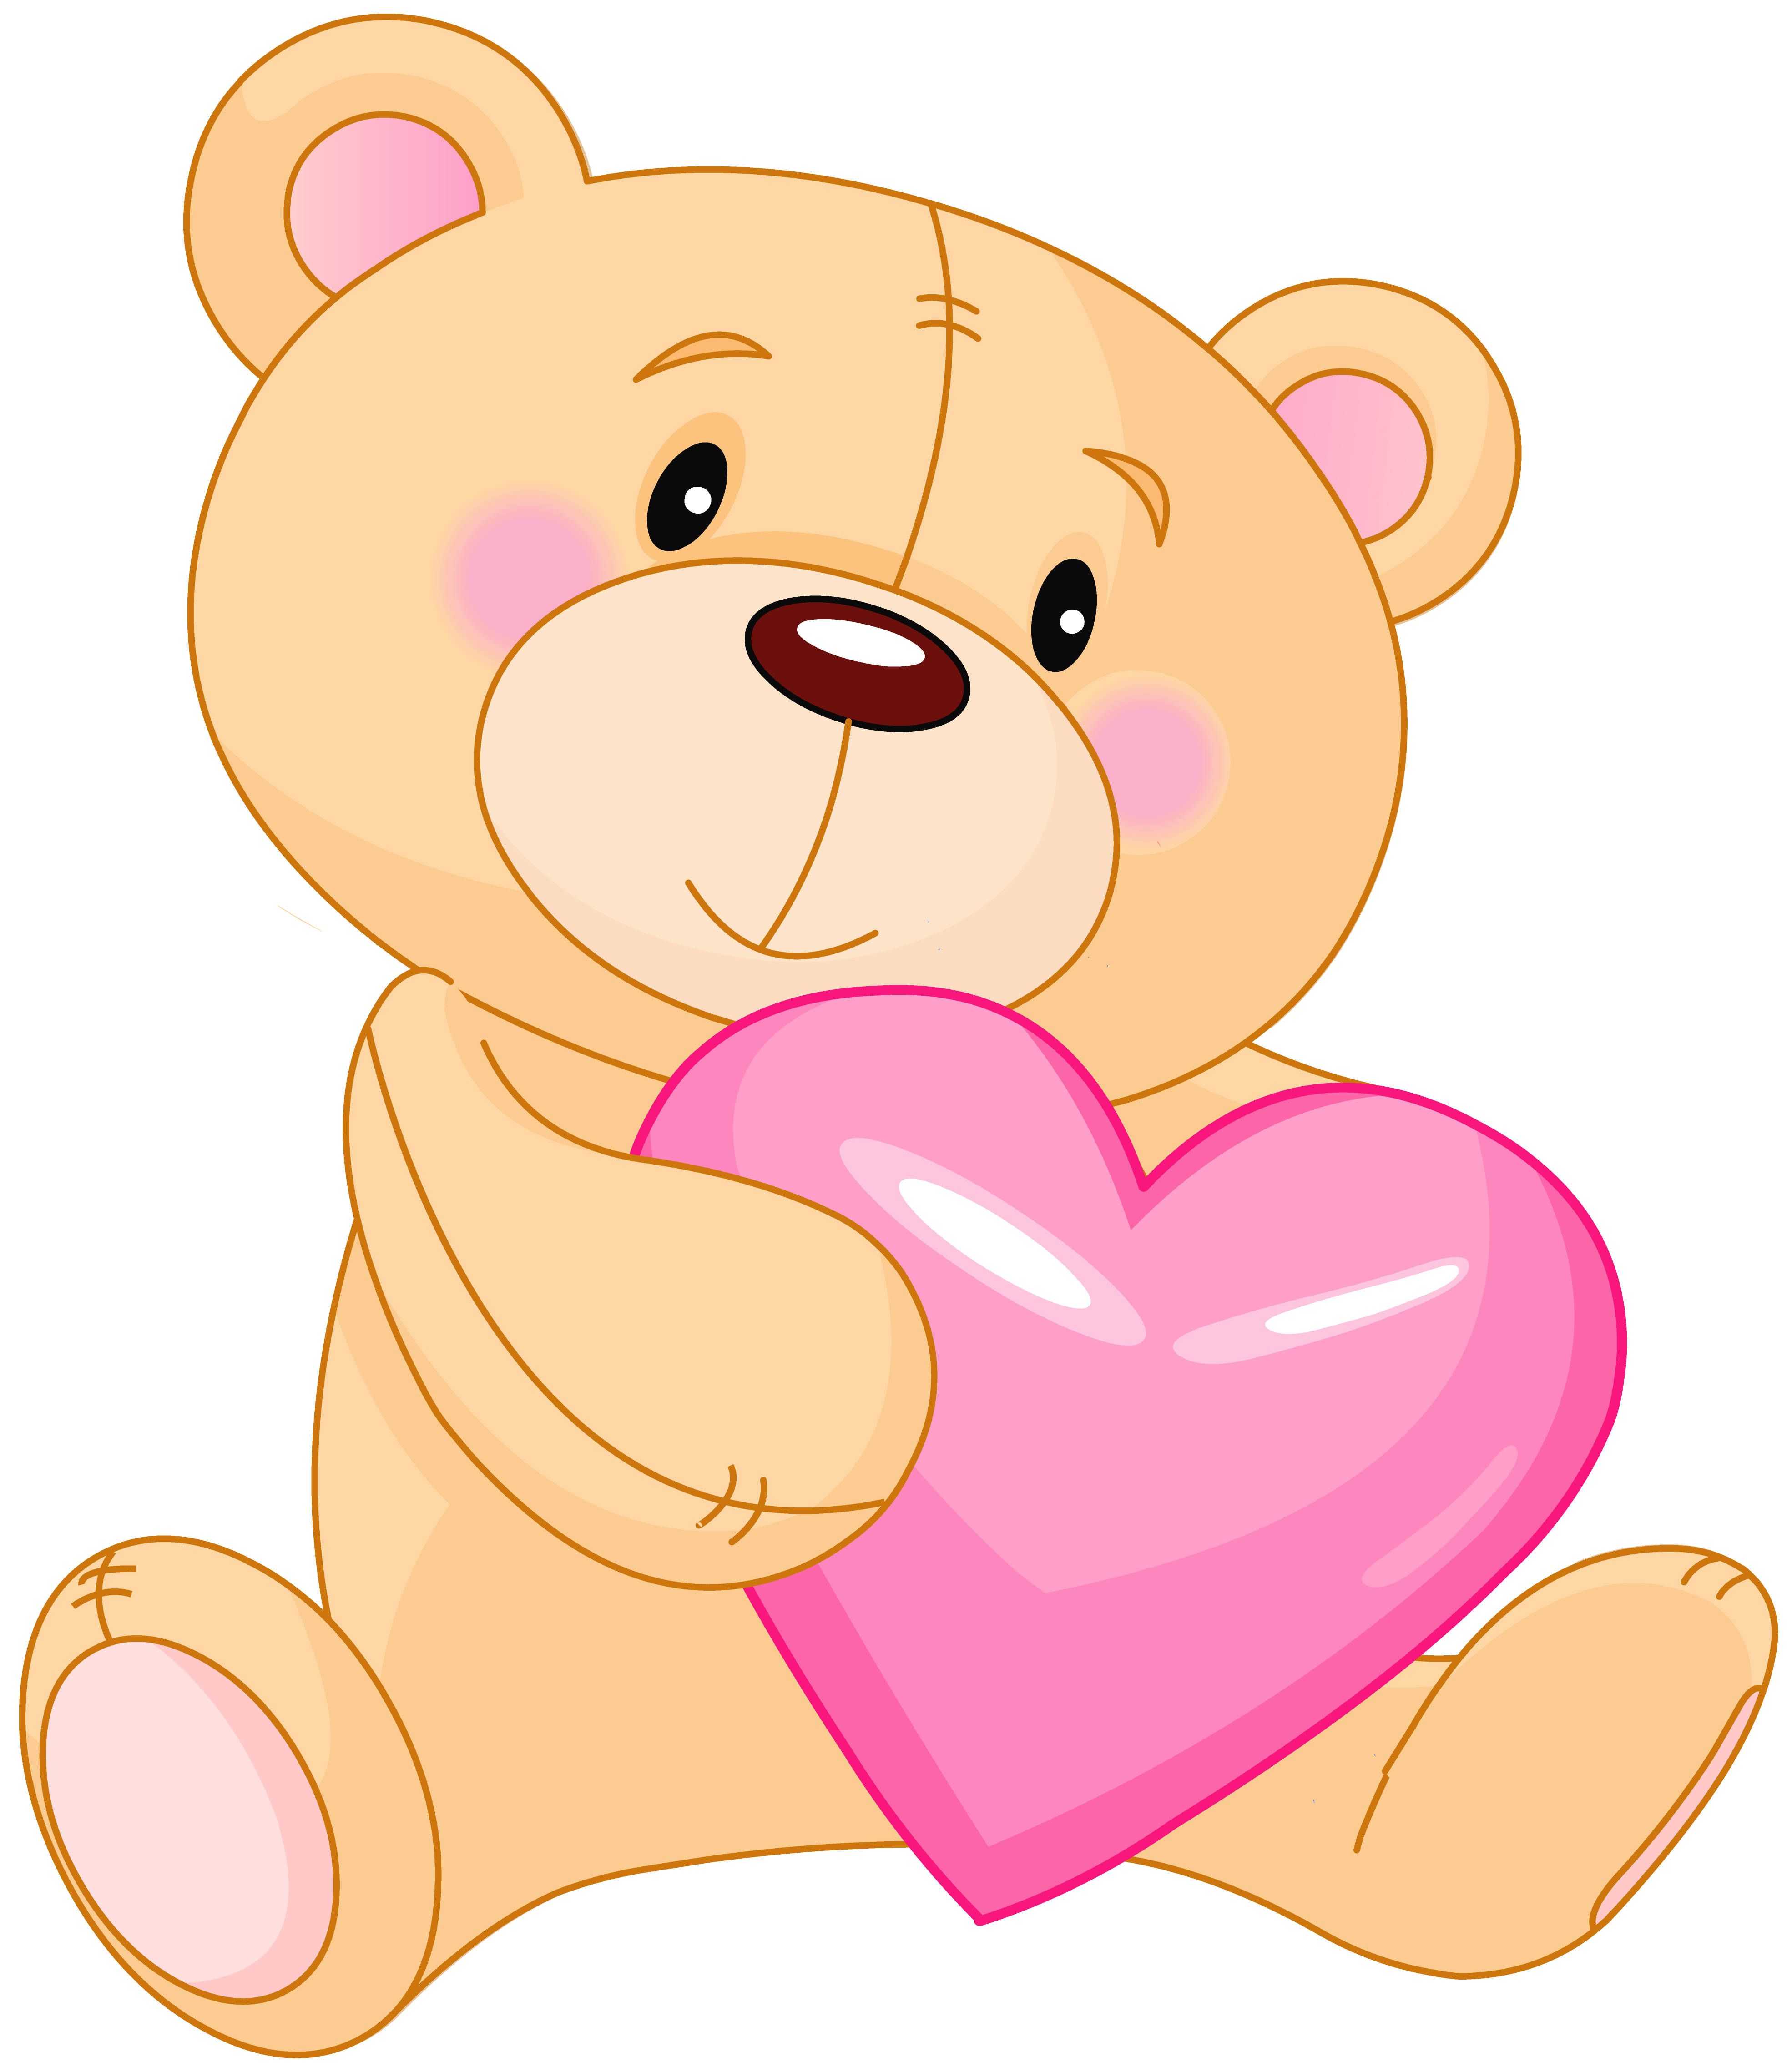 Baby bear clipart png png free stock Teddy bear clipart border cute clipground jpg - ClipartPost png free stock